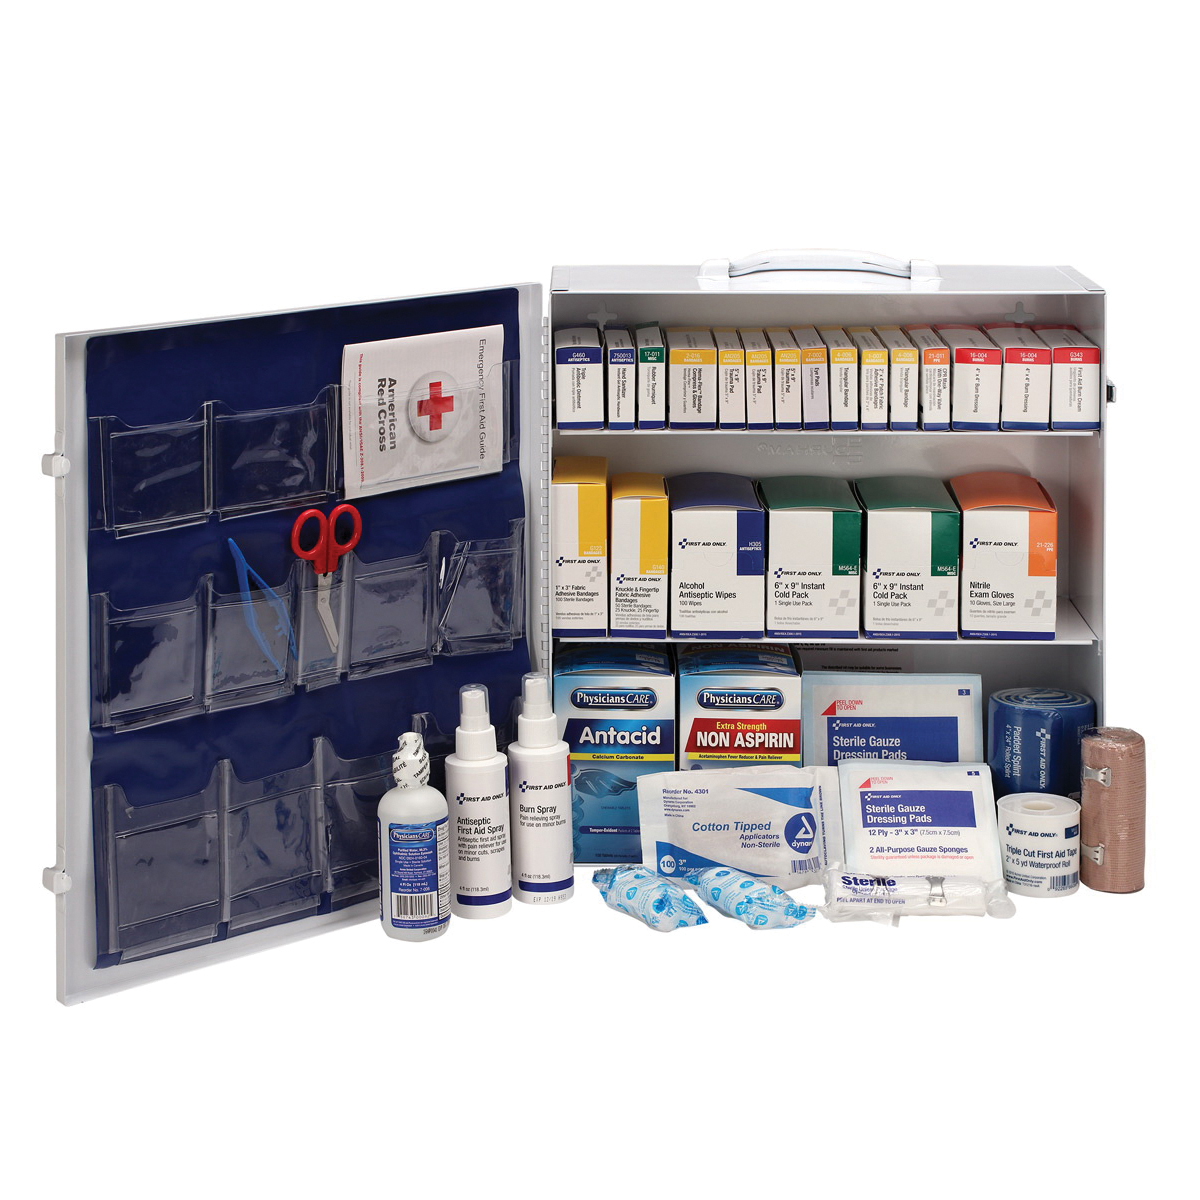 Mallory MALSA-FAK16MUA Portable Weatherproof First Aid Kit, Wall Mount, 82 Unitized Components, Metal Case